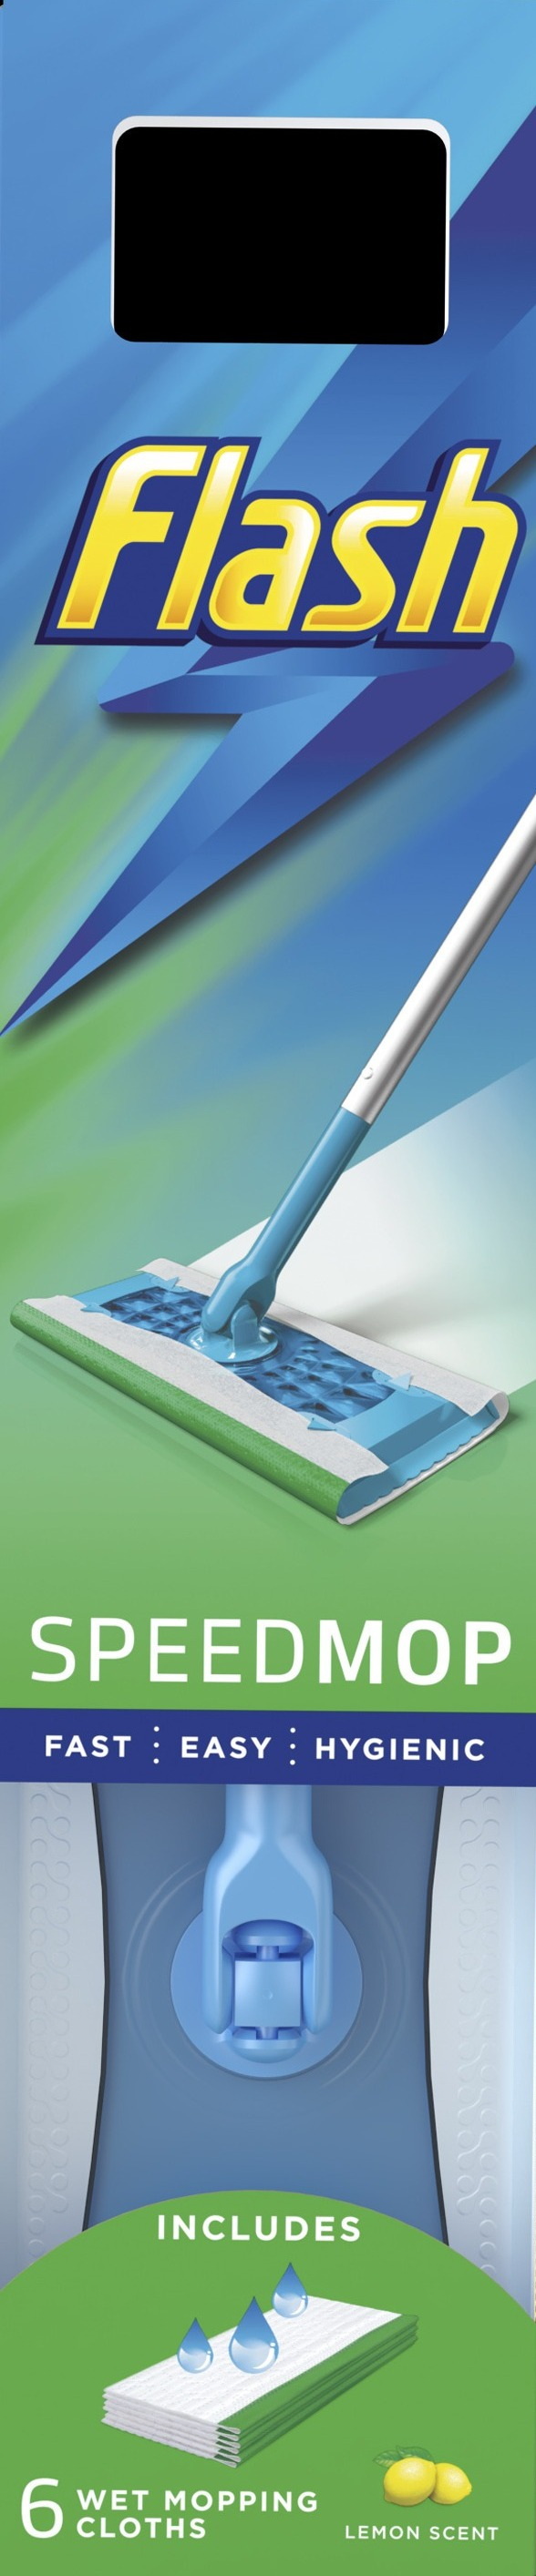 Save a tenner on Mrs Hinch's go-to, the Flash Speed Mop